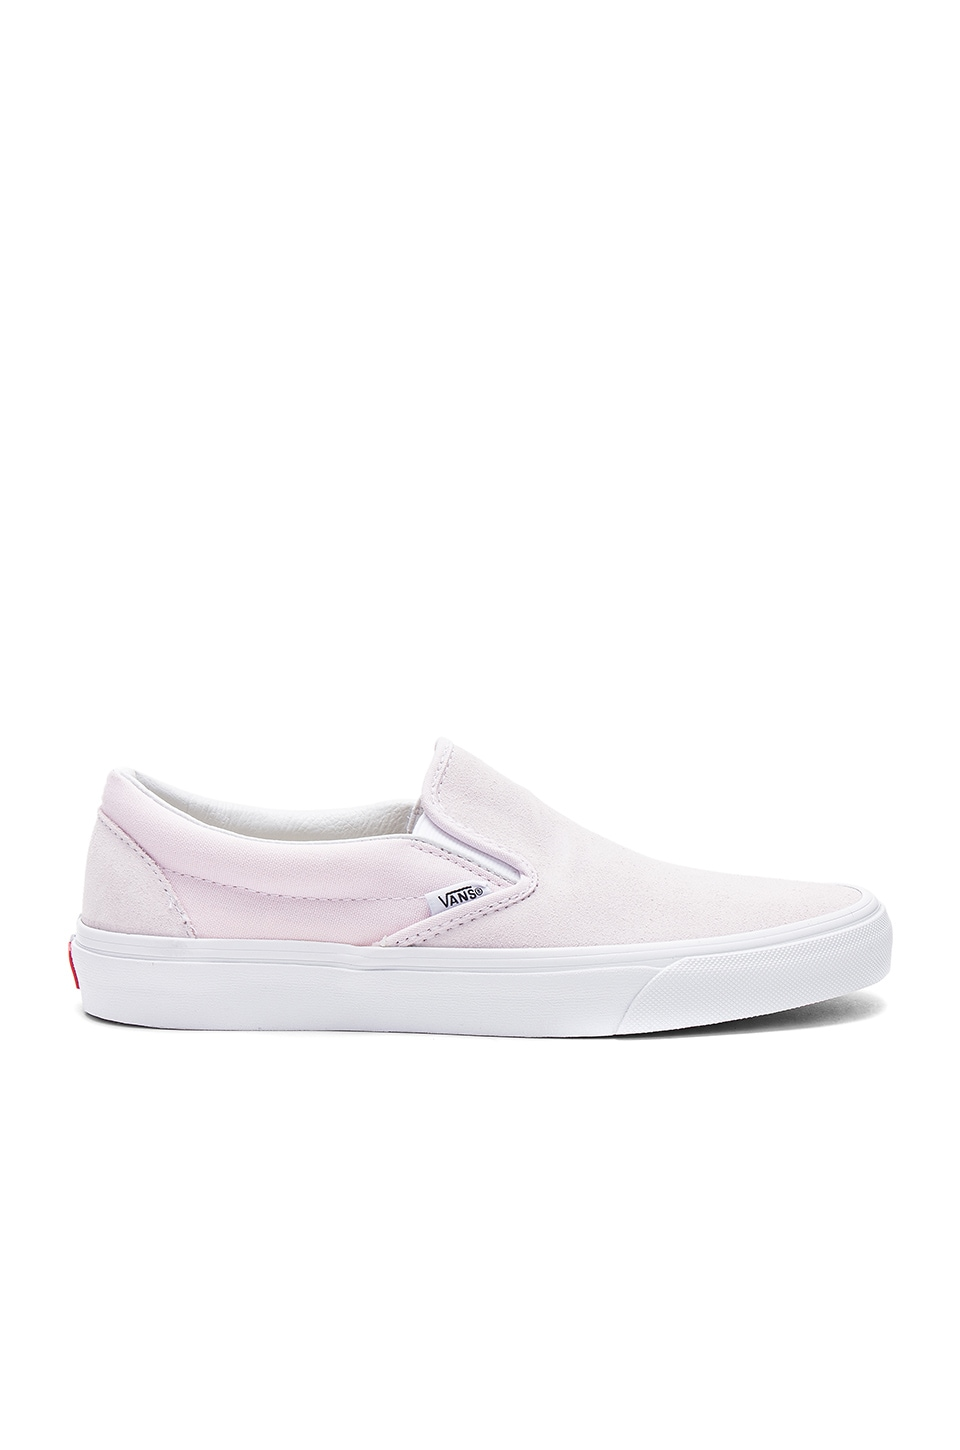 Vans Pastel Classic Slip On in Orchid Ice & True White